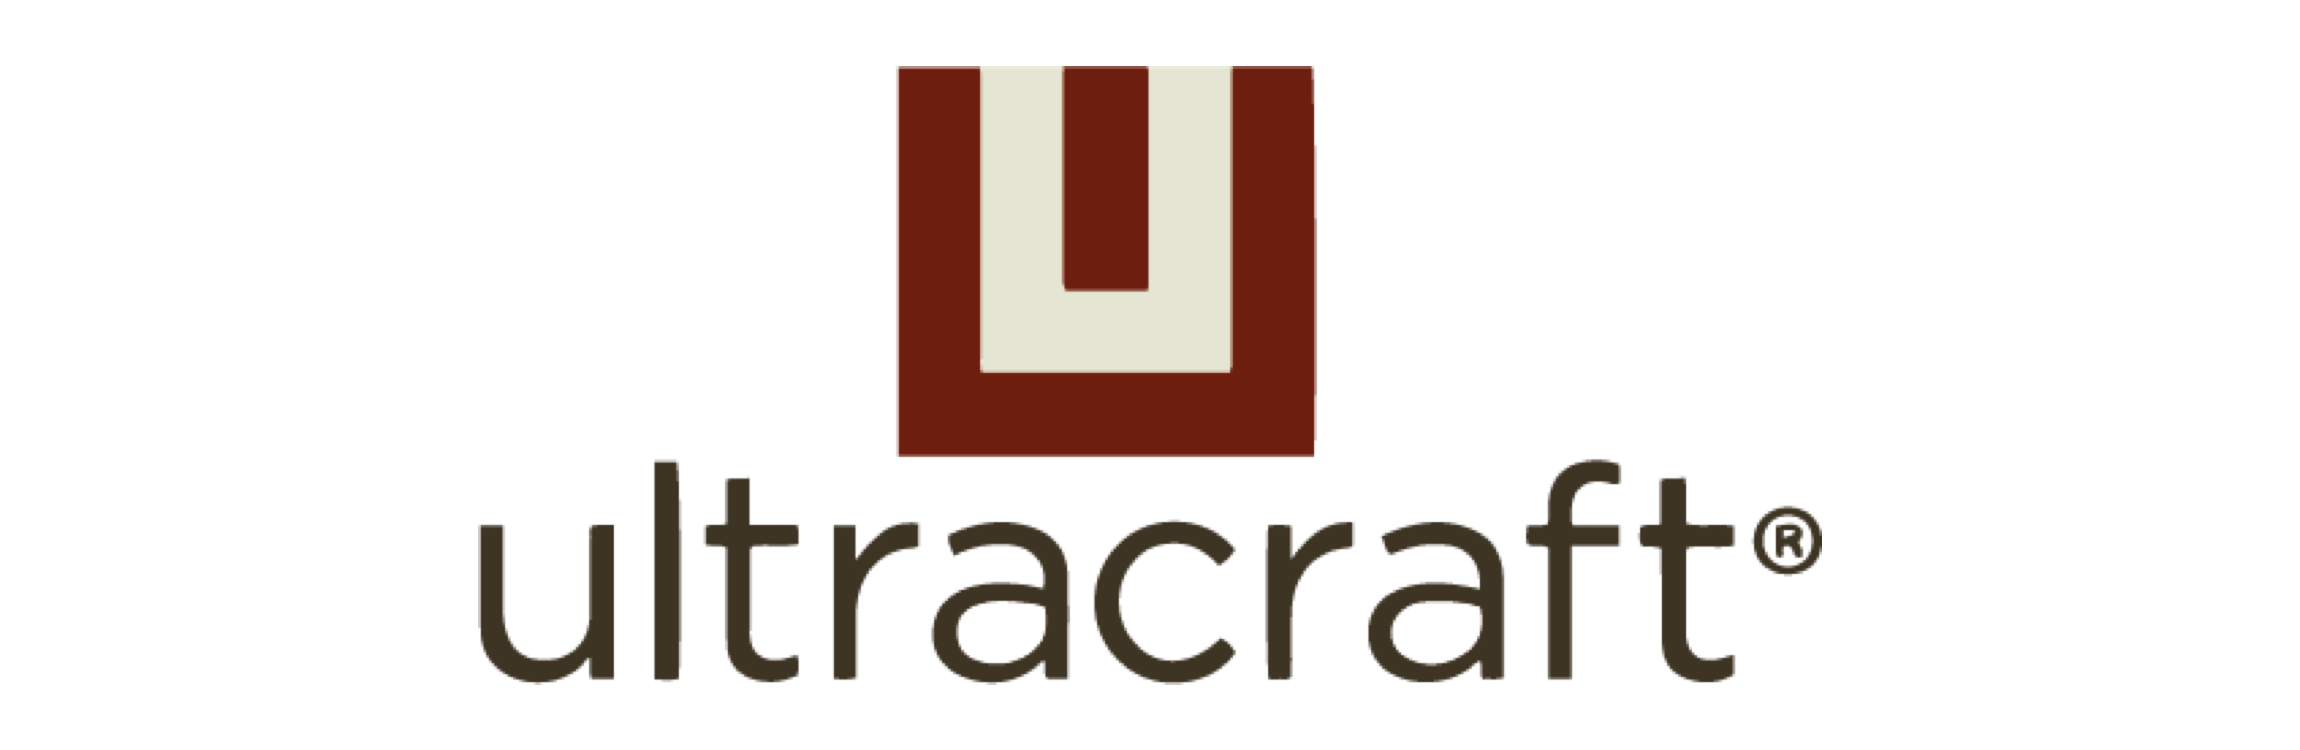 ultracraft.png